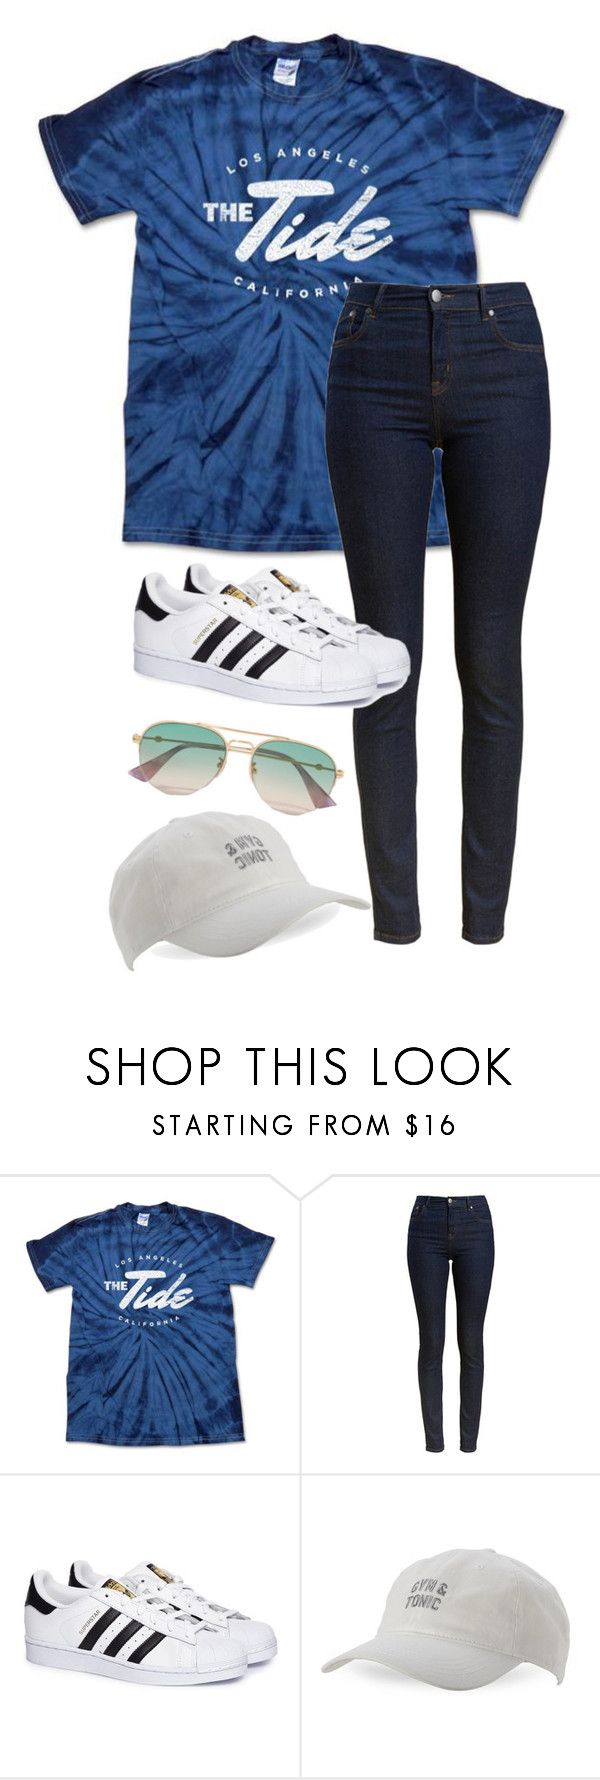 """""""camp outfit 1"""" by weirdestgirlever ❤ liked on Polyvore featuring Barbour, adidas, Body Rags and Gucci"""